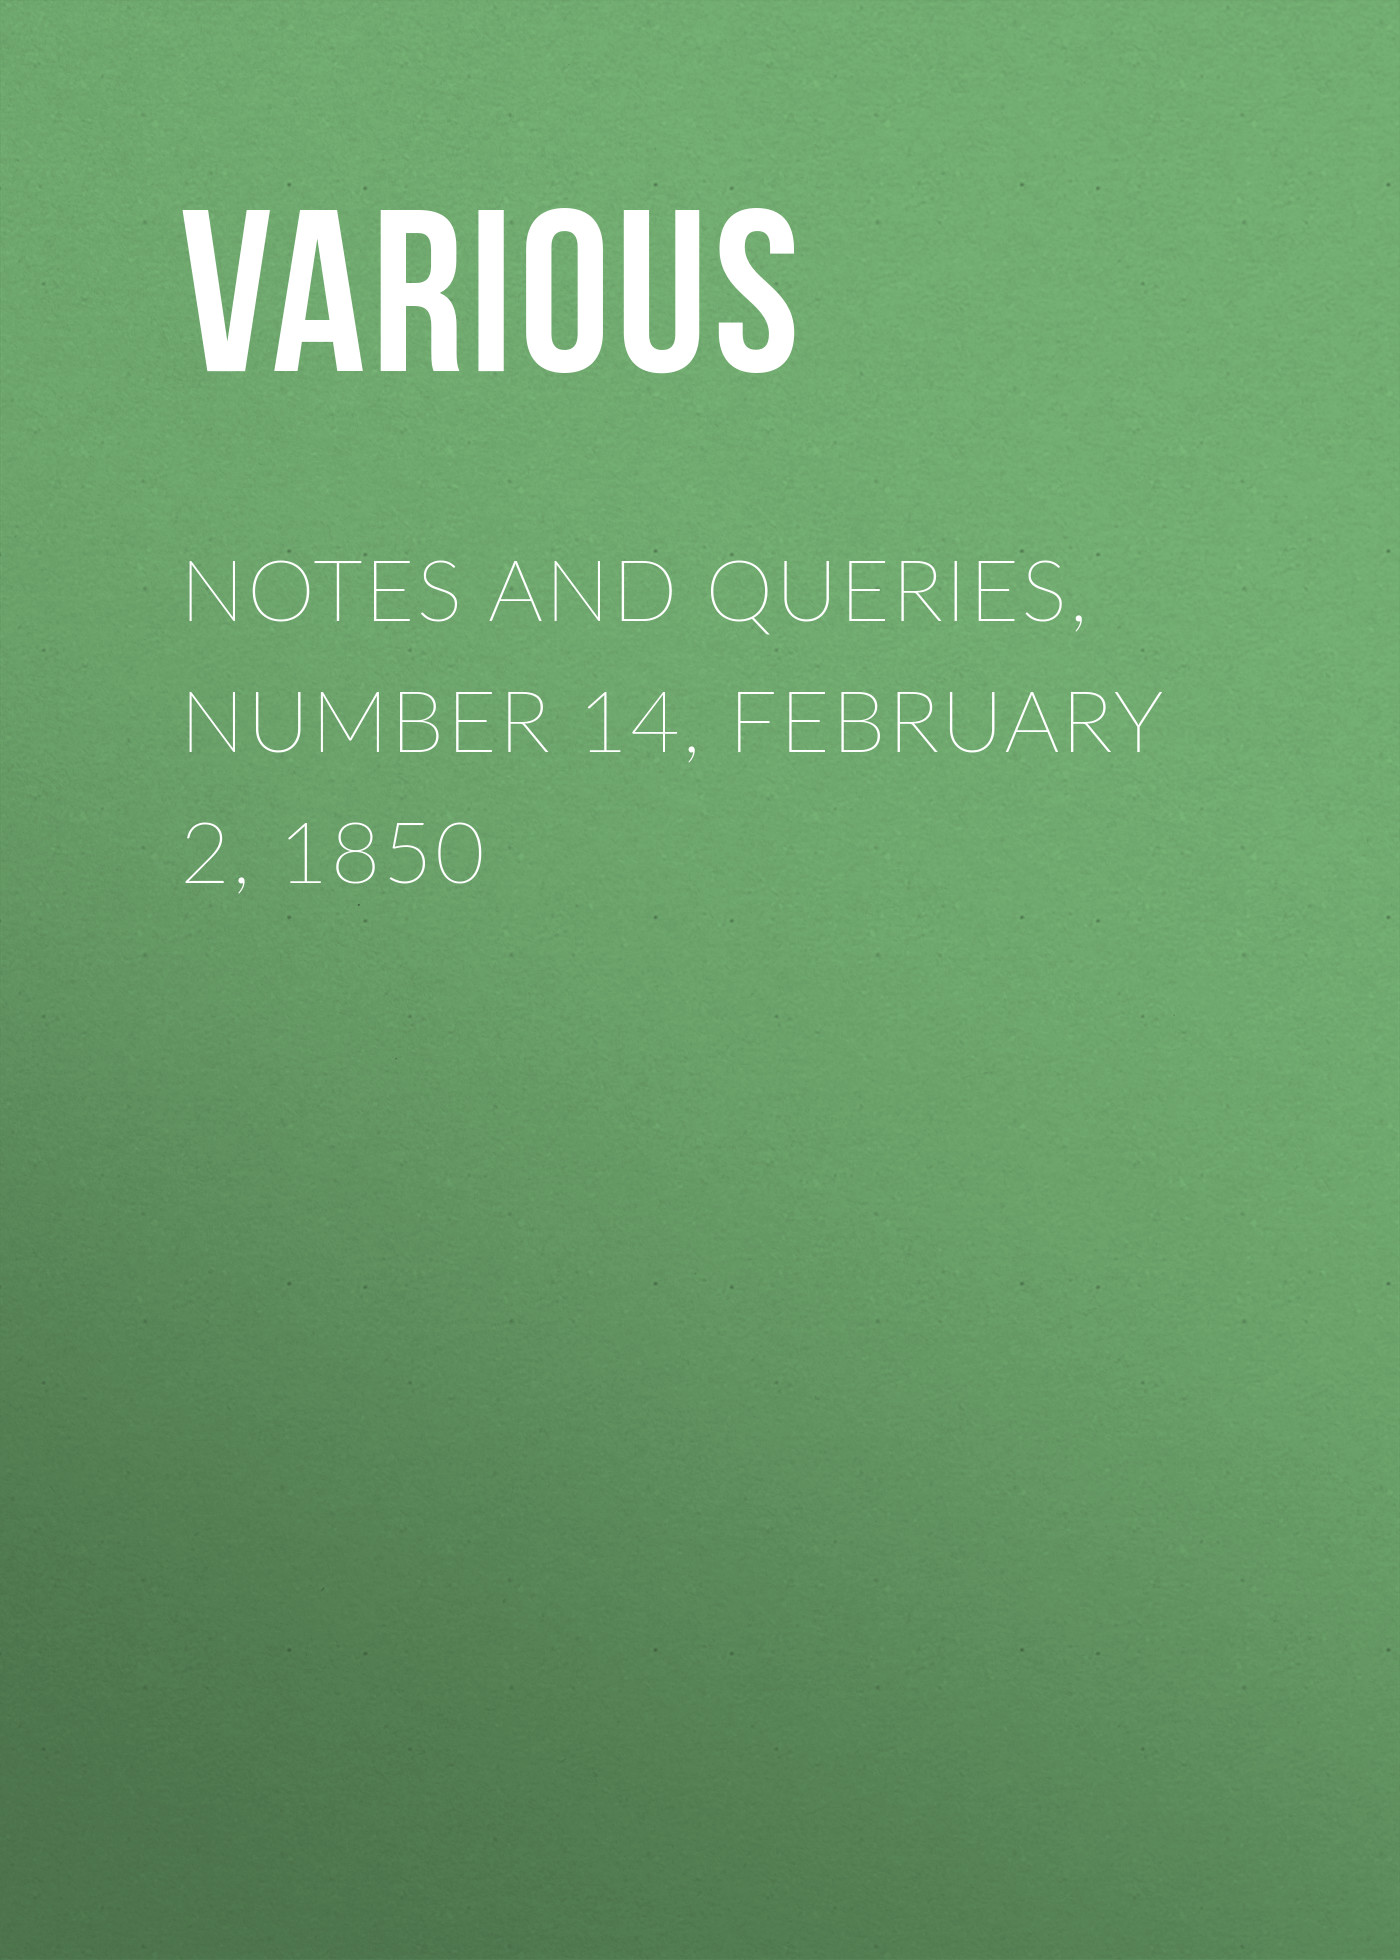 Various Notes and Queries, Number 14, February 2, 1850